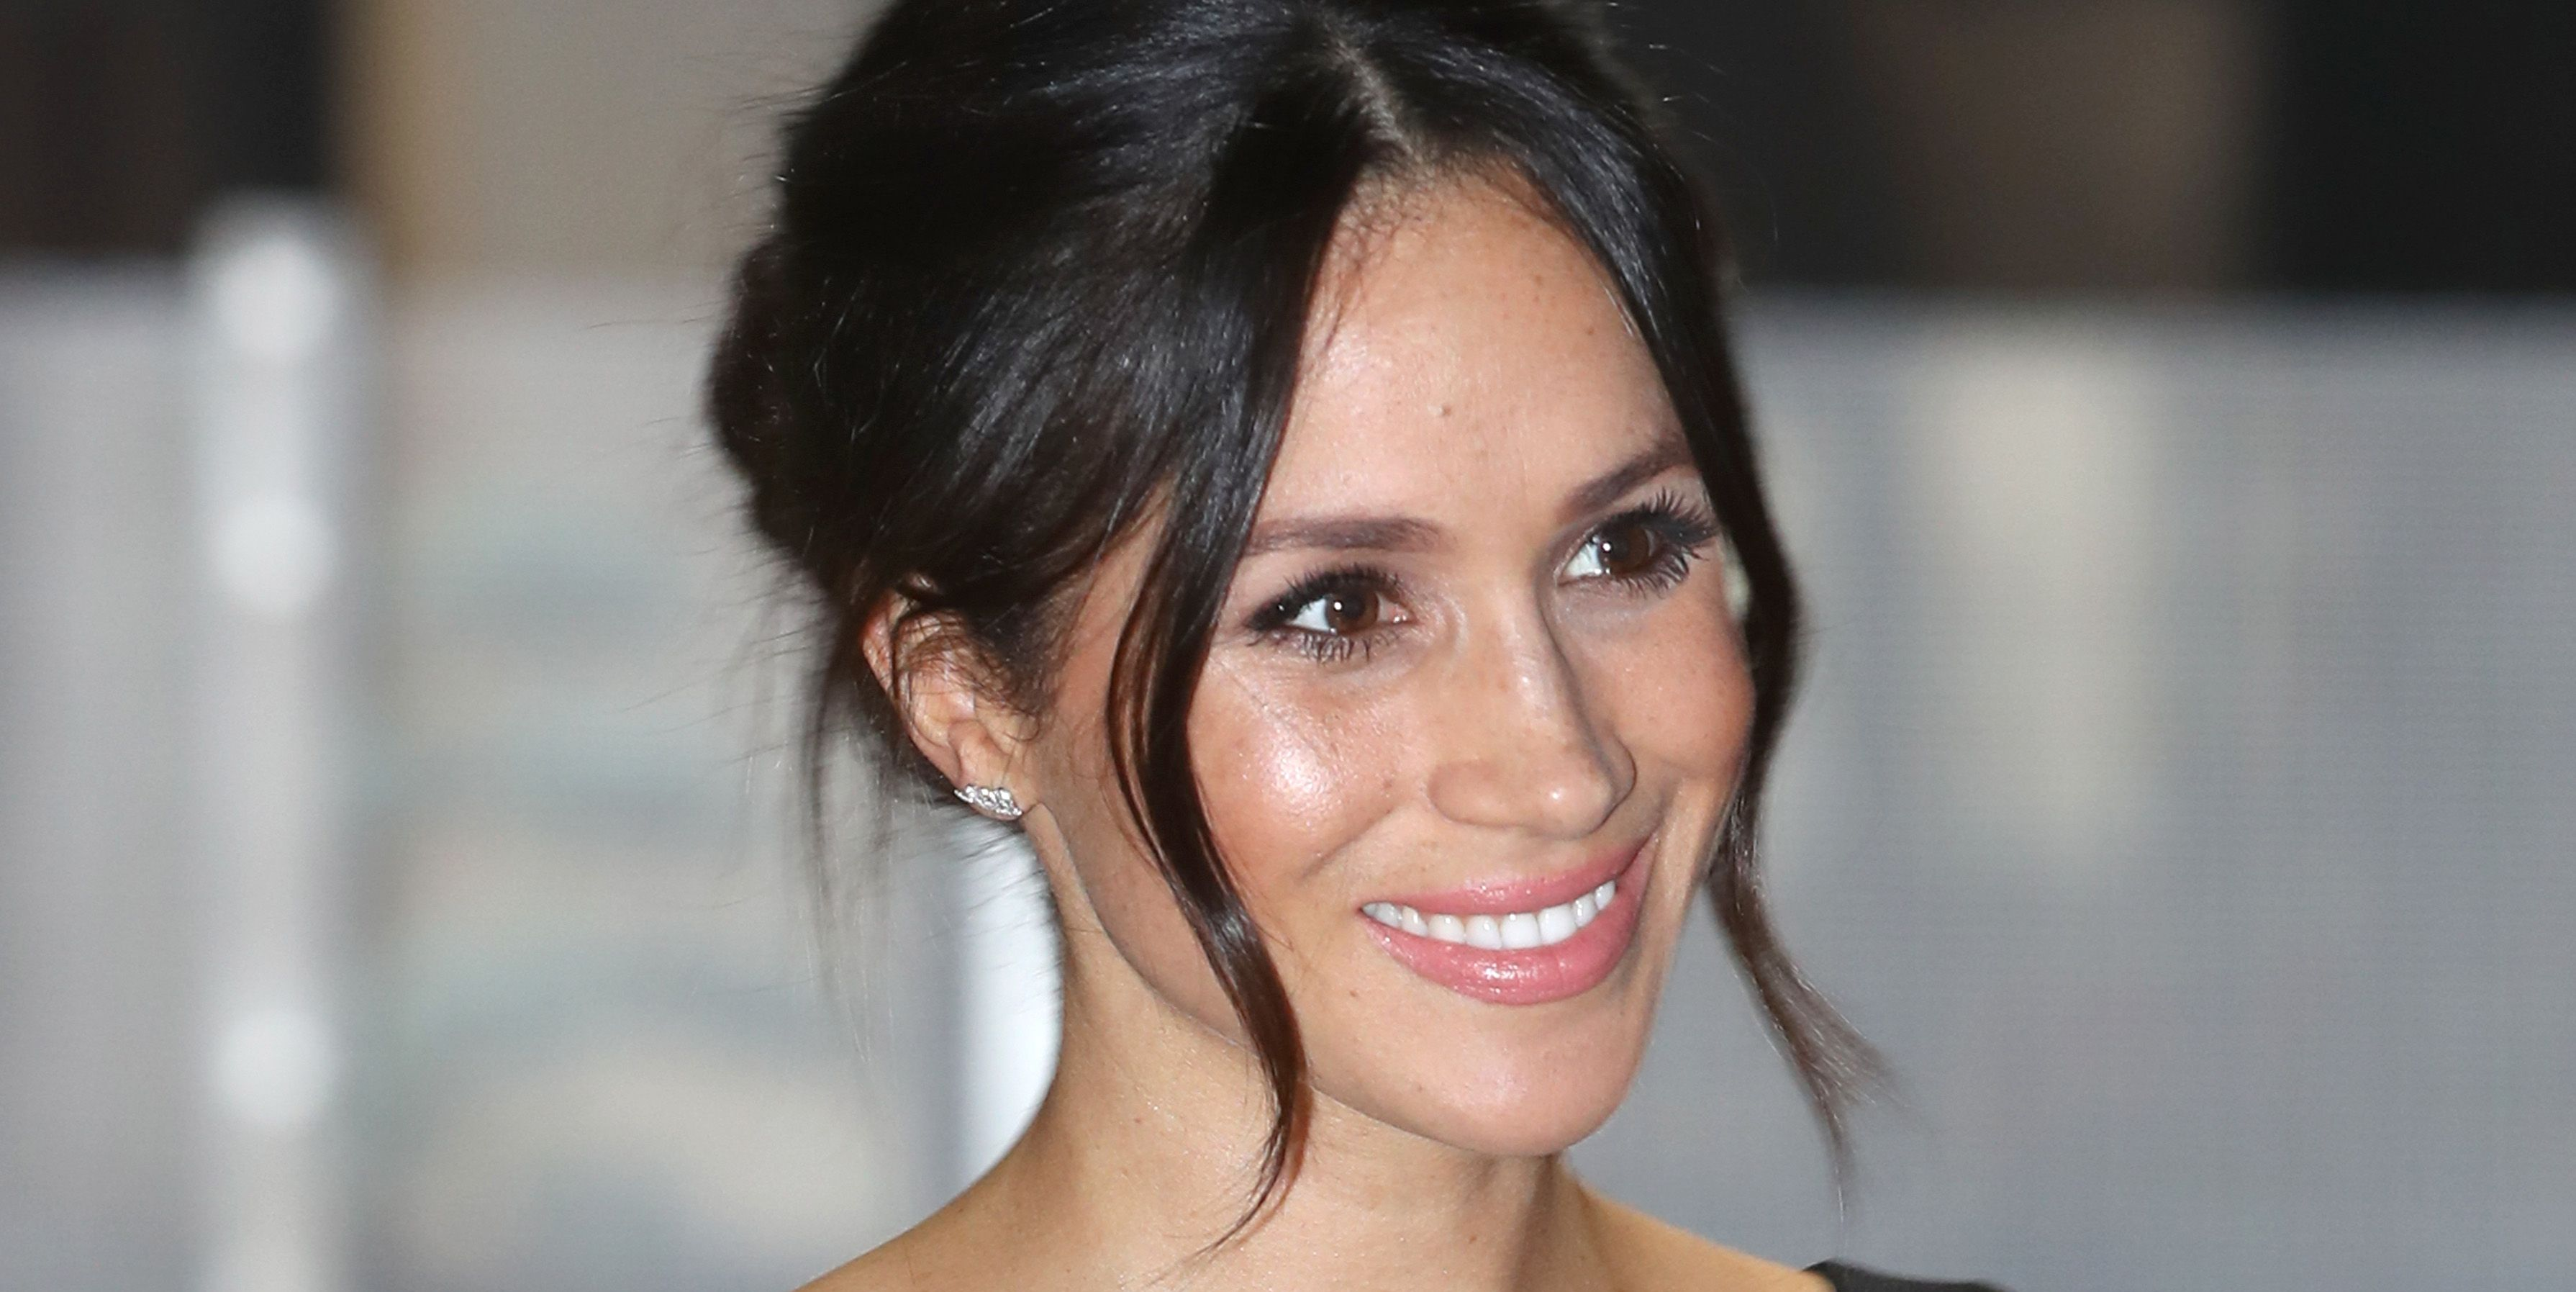 Meghan Markle's Latest Instagram Comment Has a Huge Clue About Whether or Not She's Given Birth